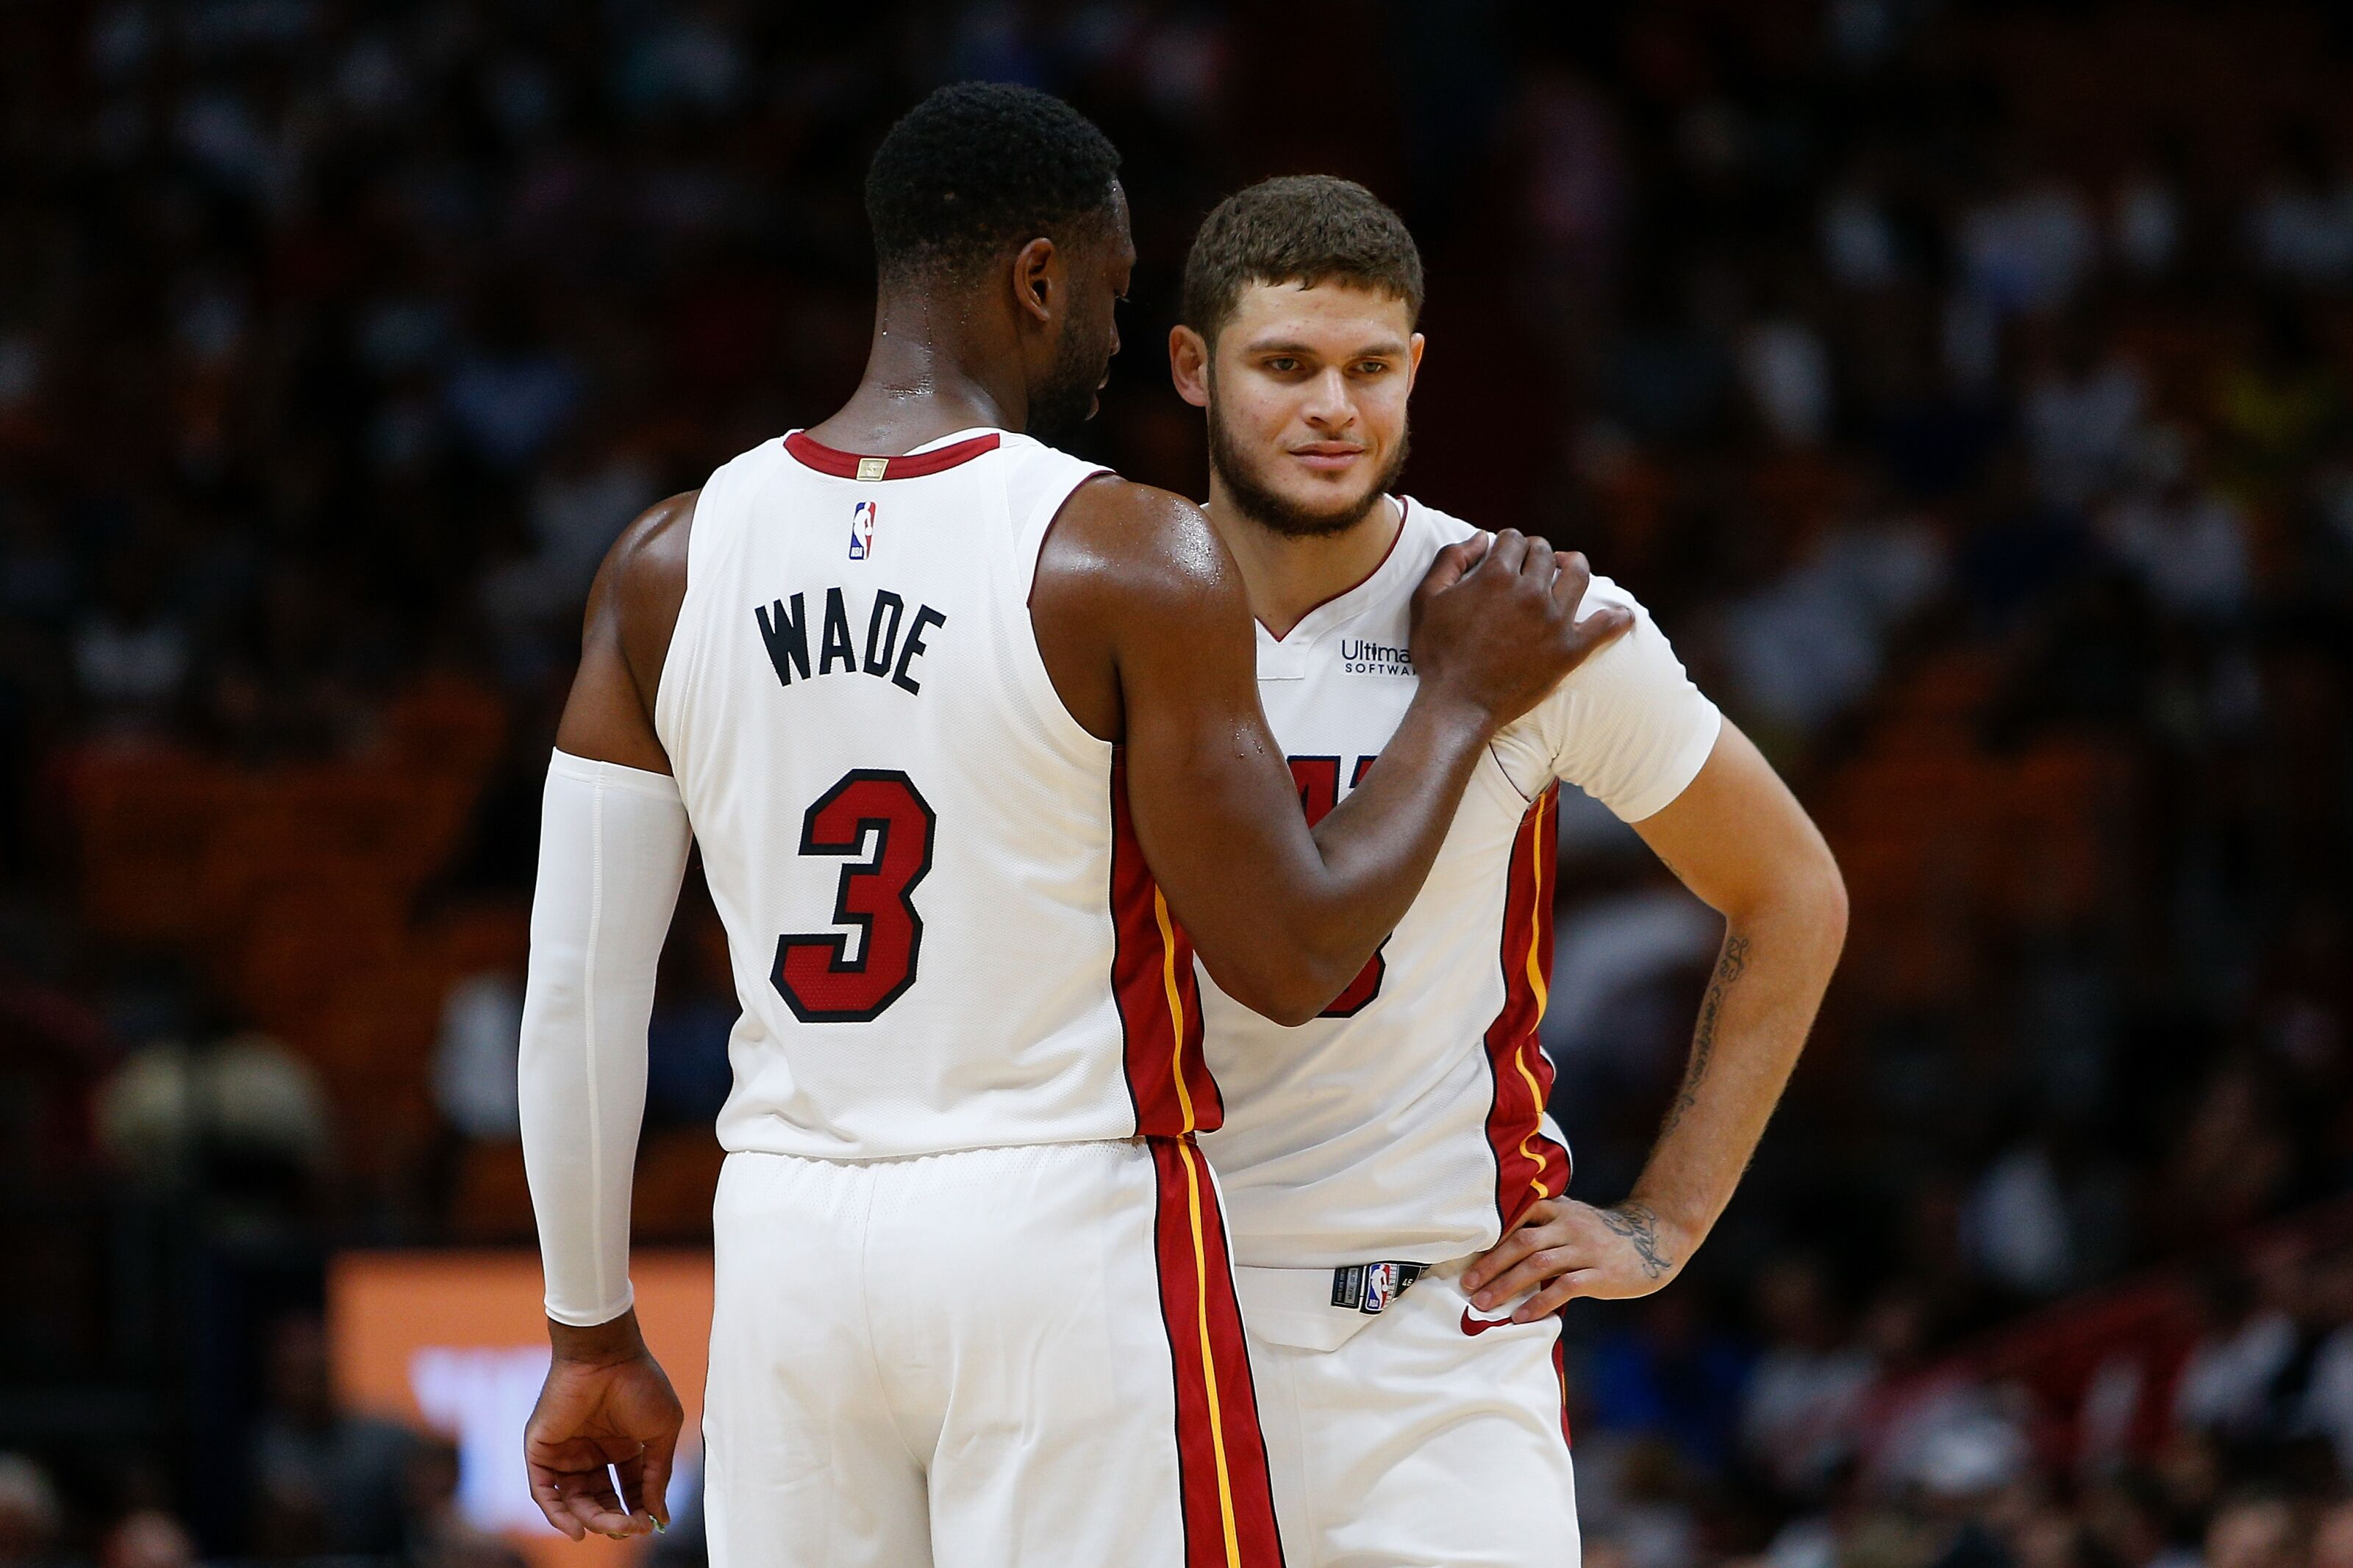 Miami Heat rotations should not be determined by money